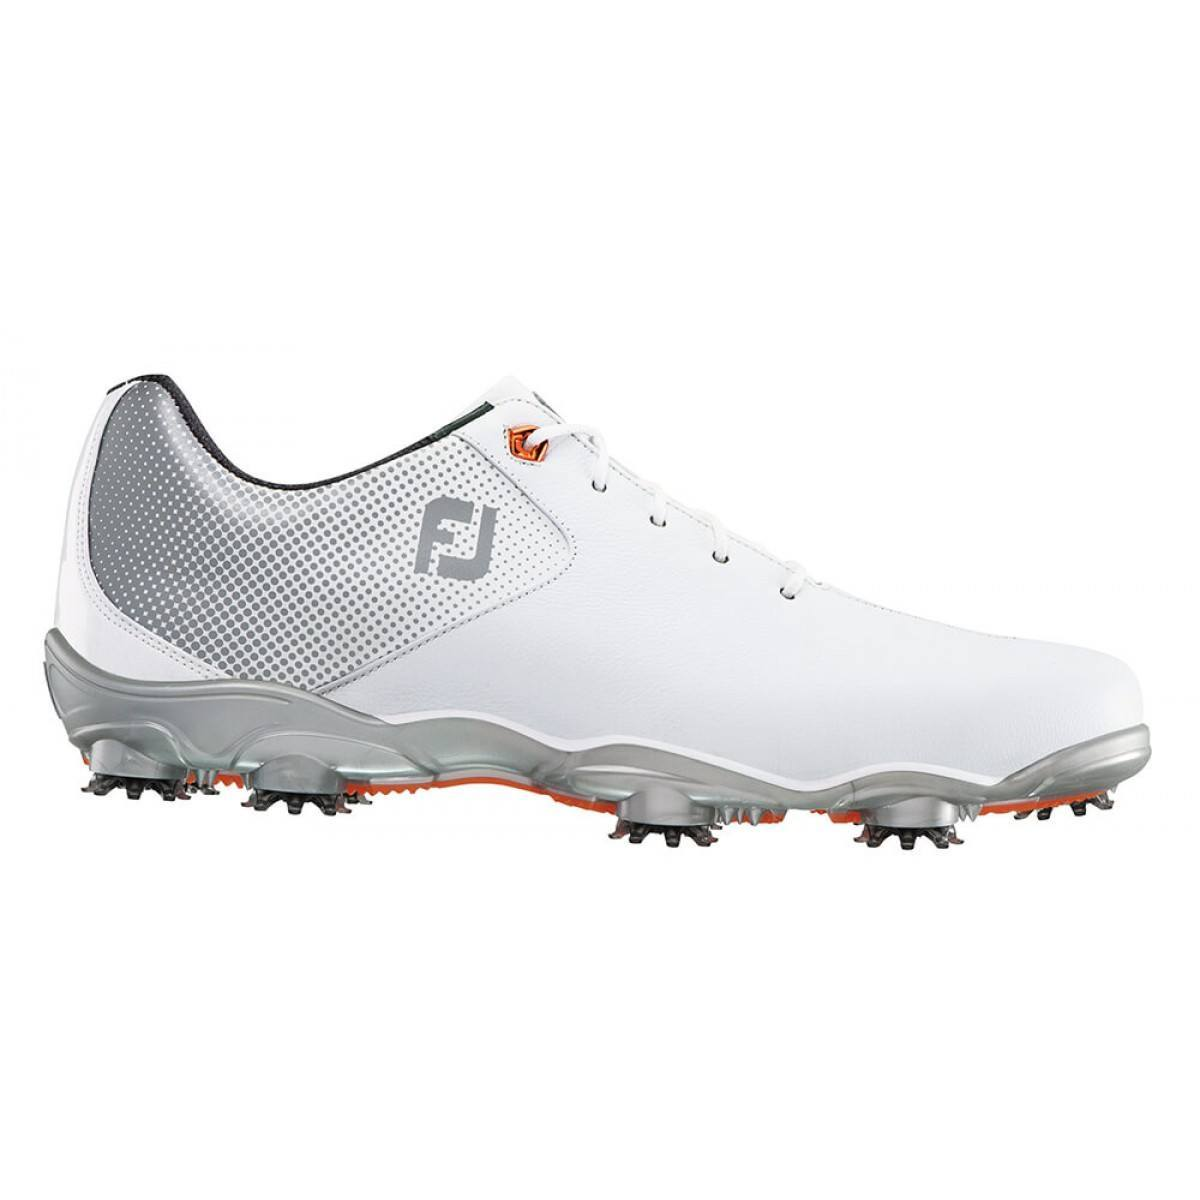 Footjoy Dna Shoes Price